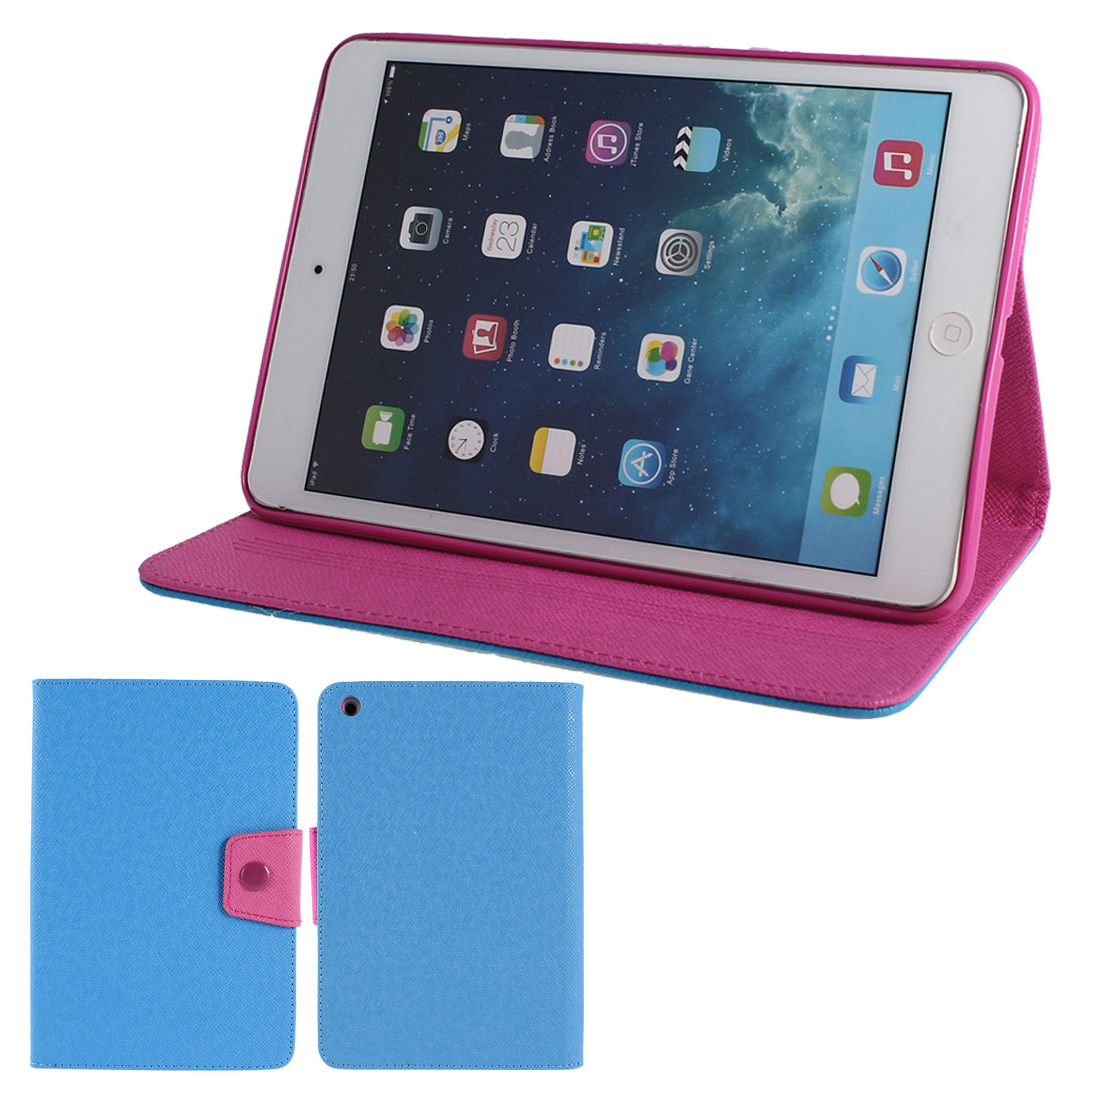 Blue PU Leather Fushia Silicone Holder Folio Flip Stand Case Cover for iPad Mini